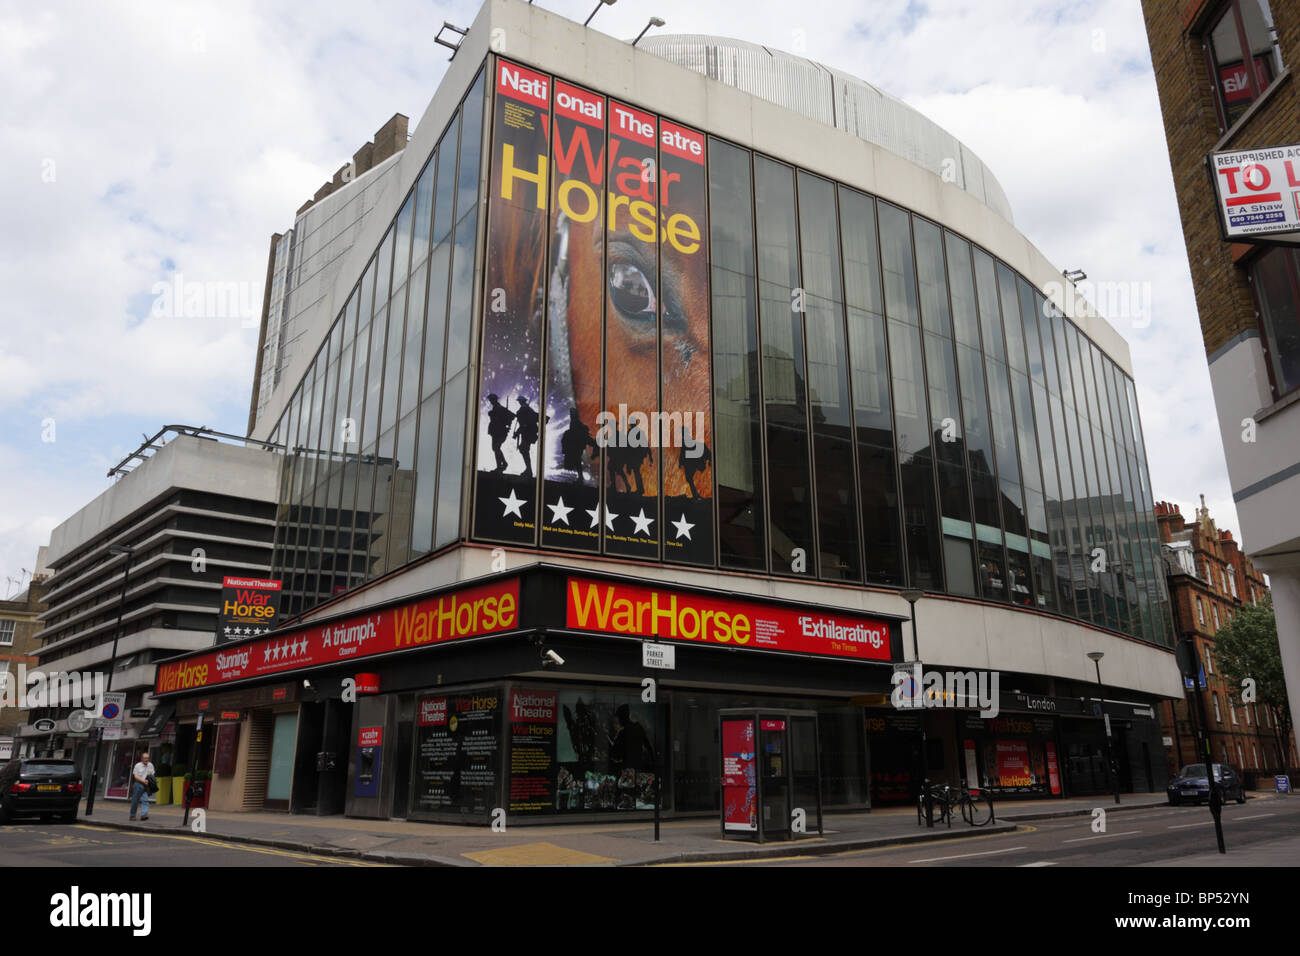 Currently showing the production of War Horse the New London Theatre, situated at the junction of Parker Street - Stock Image